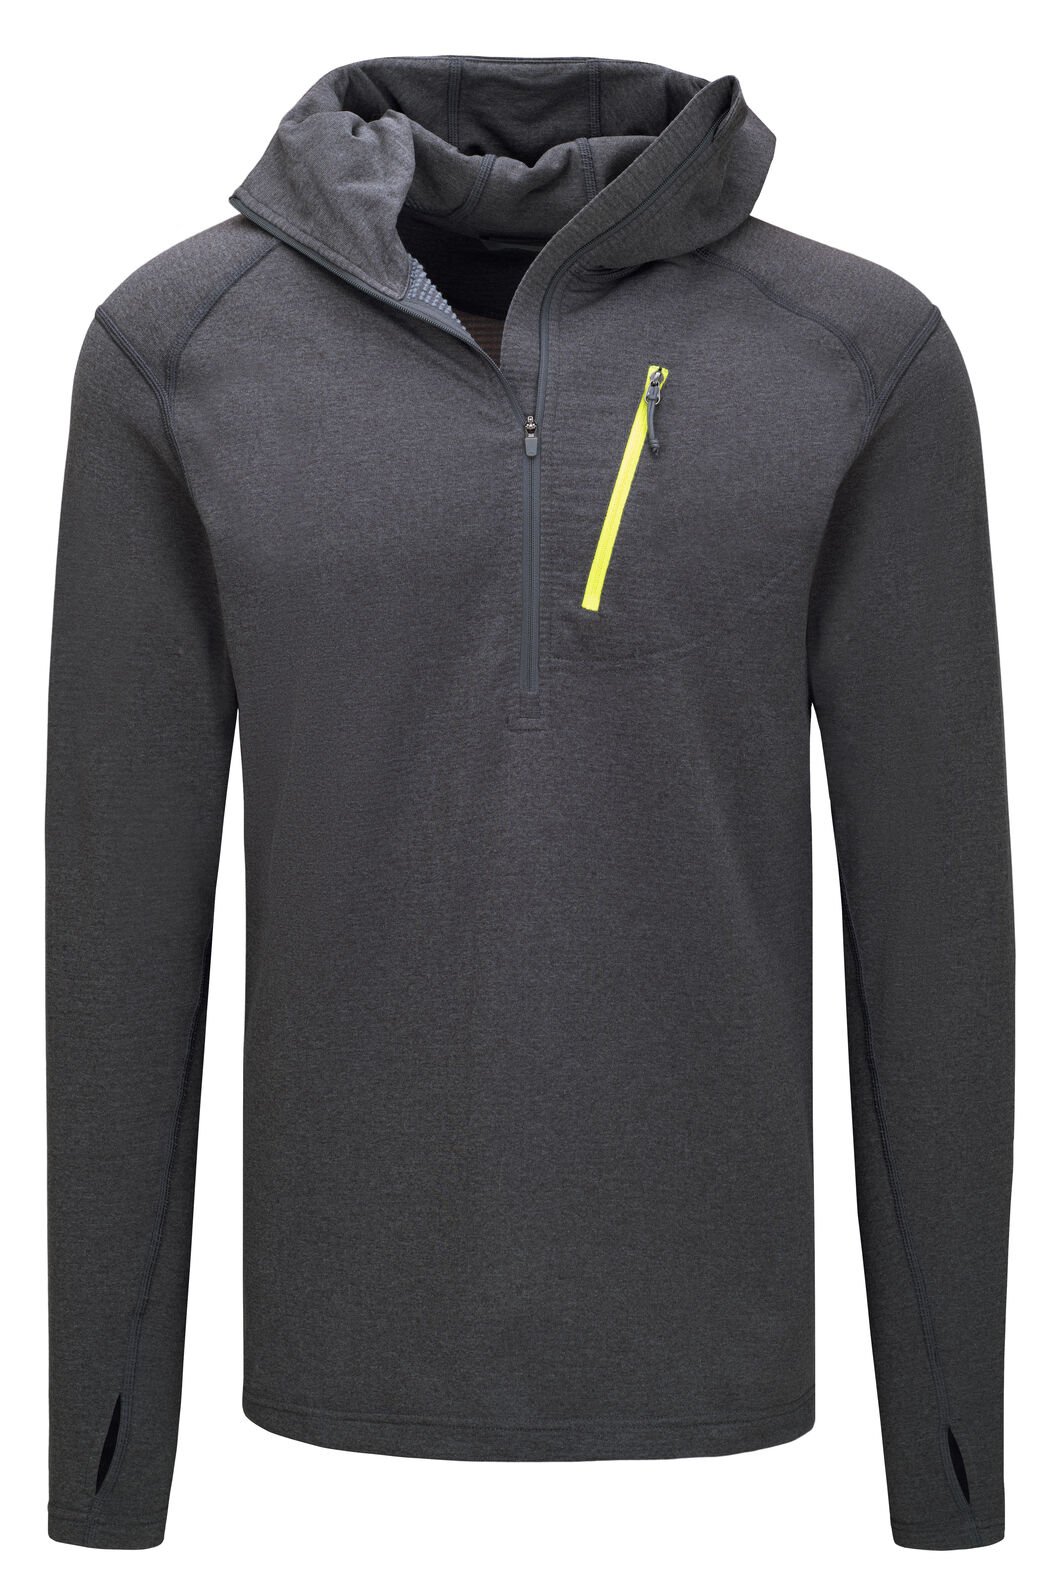 Macpac Men's Prothermal Polartec® Hooded Pullover, Iron Gate, hi-res